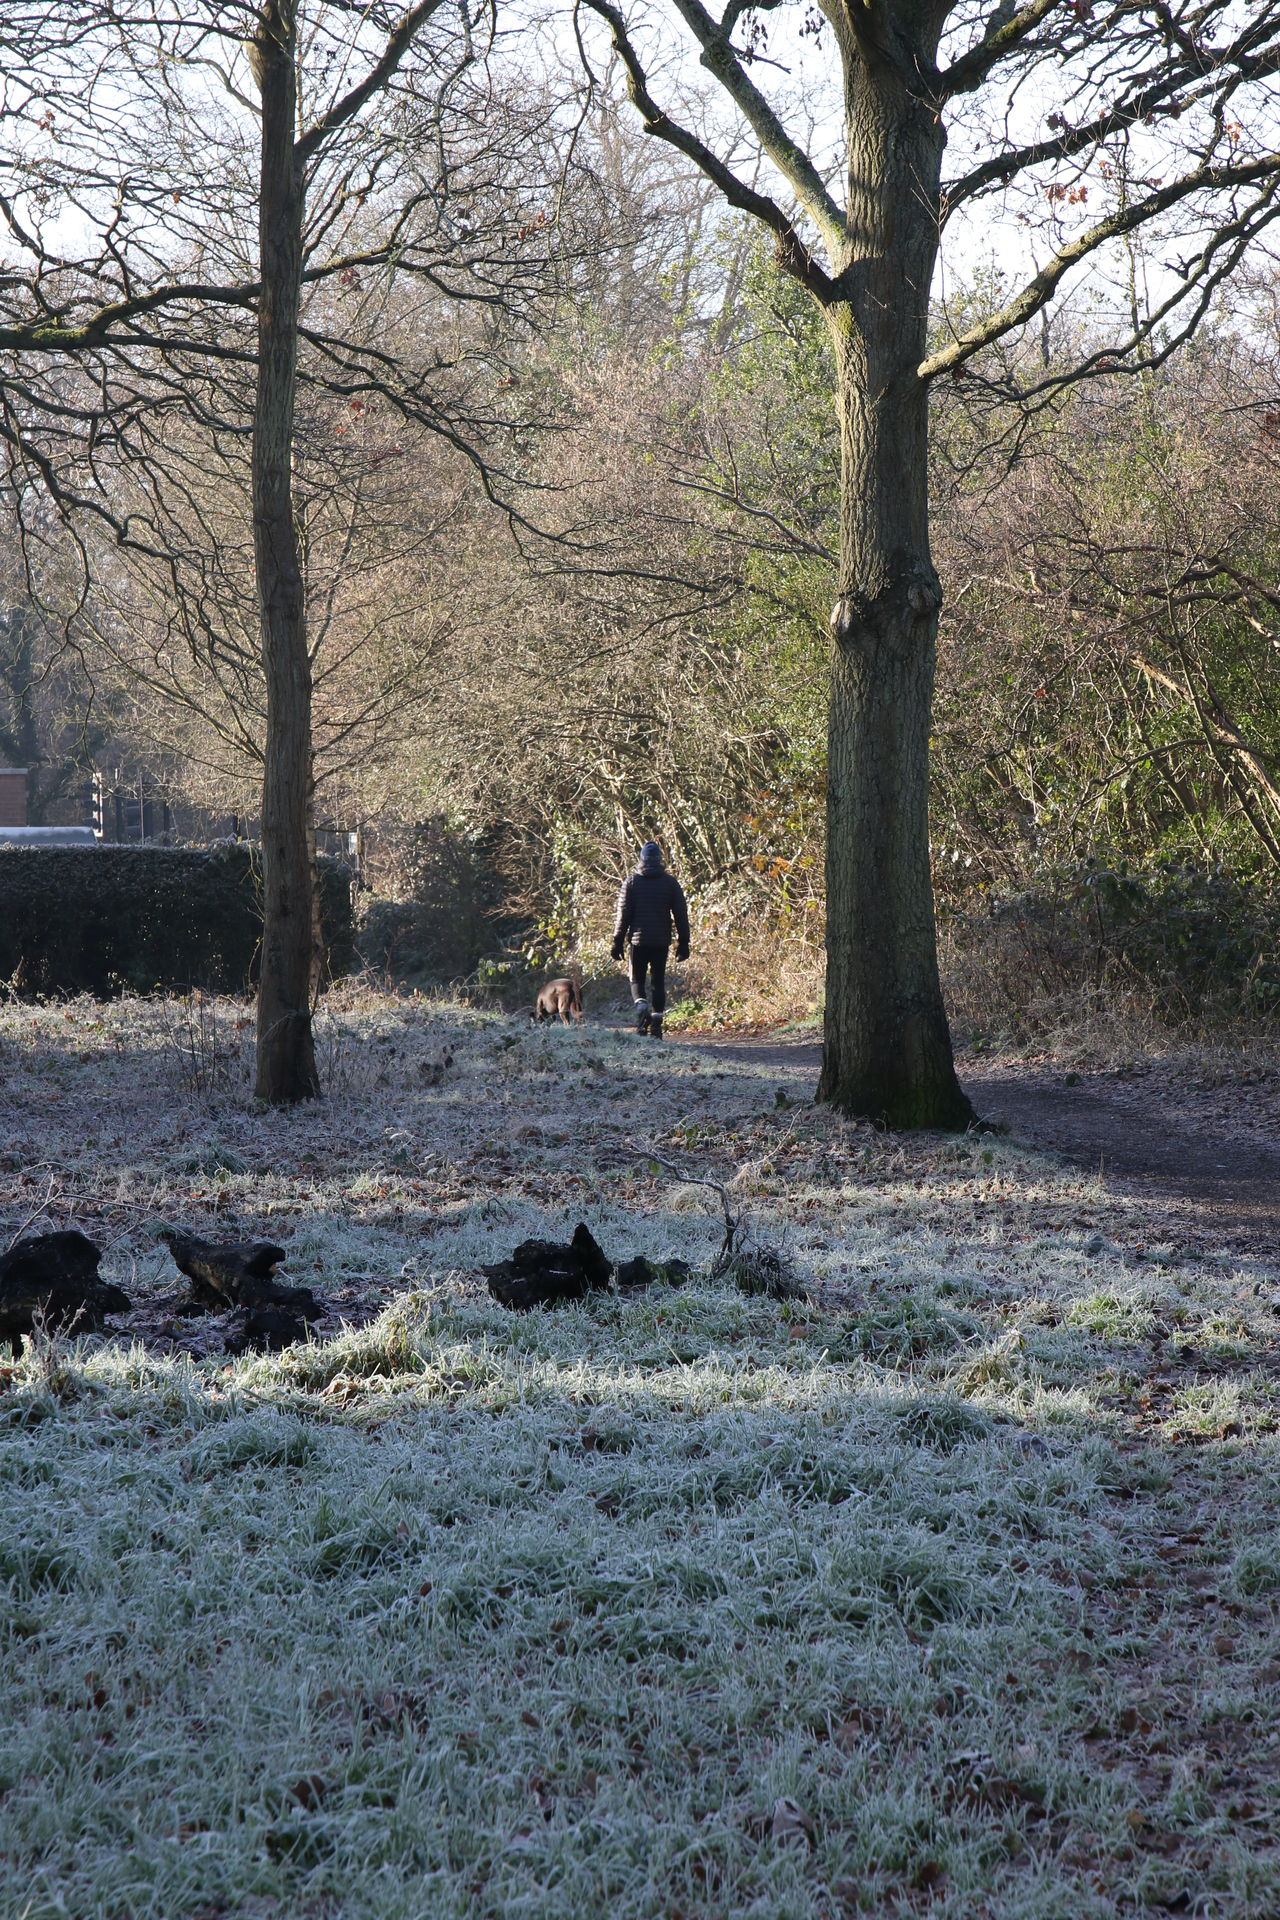 Beauty In Nature Day Dog Dog Walker Domestic Animals Frost Frosty Morning Nature Outdoors Sunlight Surrey Countryside Tree Walking Water